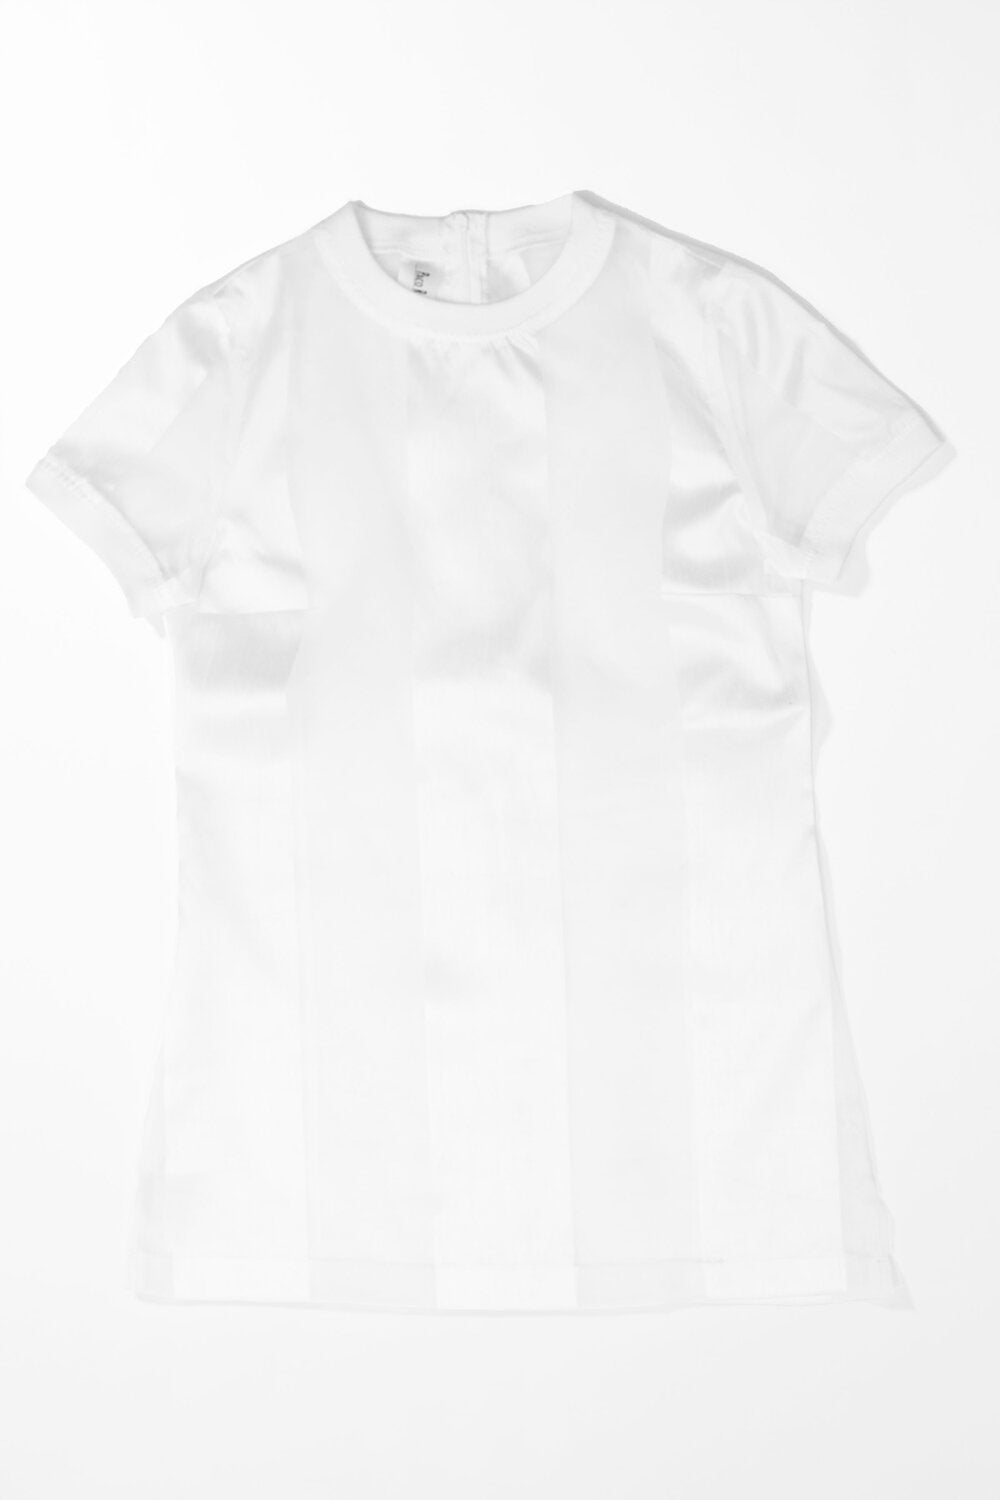 Castaway Striped Organza T-Shirt (White) - pacorogiene